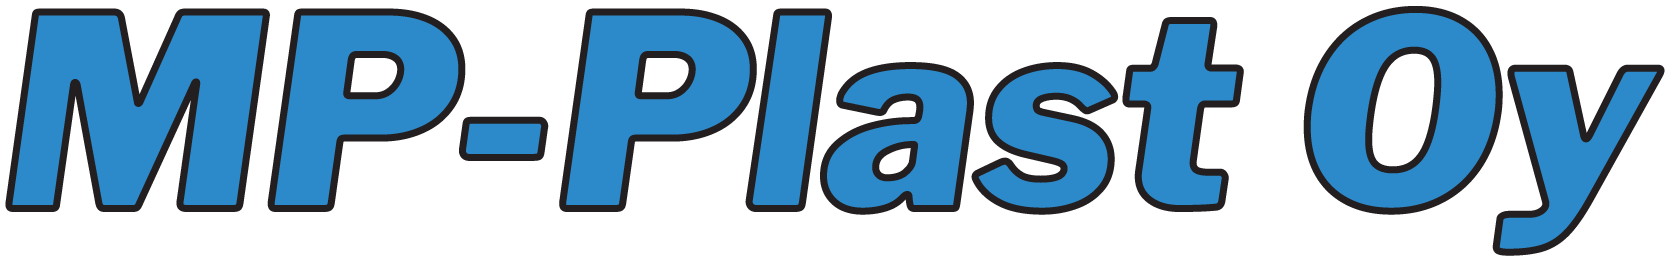 MP-Plast - logo